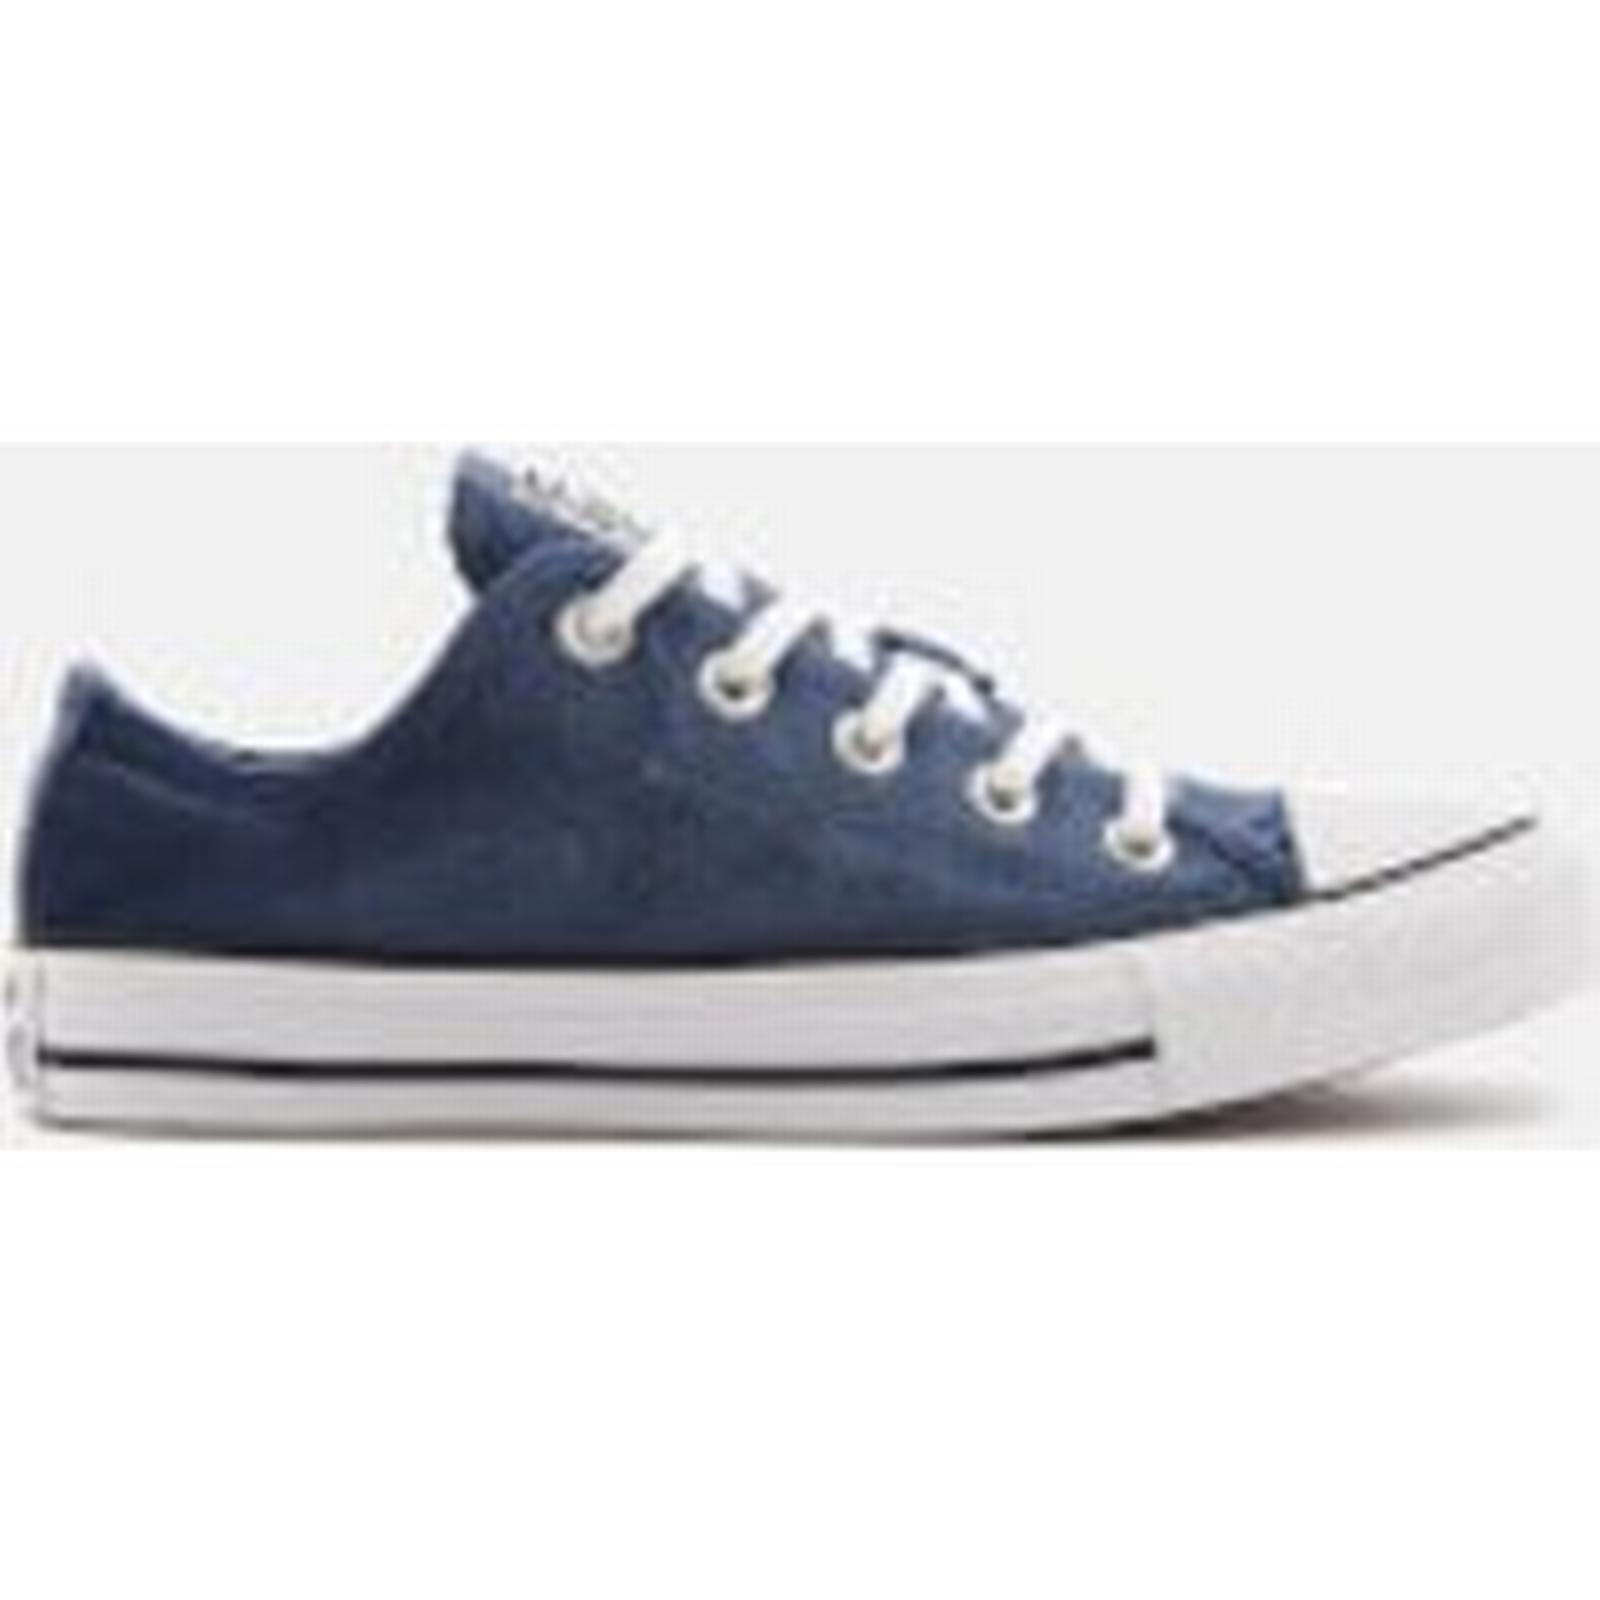 Converse Women's Ox Chuck Taylor All Star Ox Women's Trainers - Midnight Navy/White/White de4174